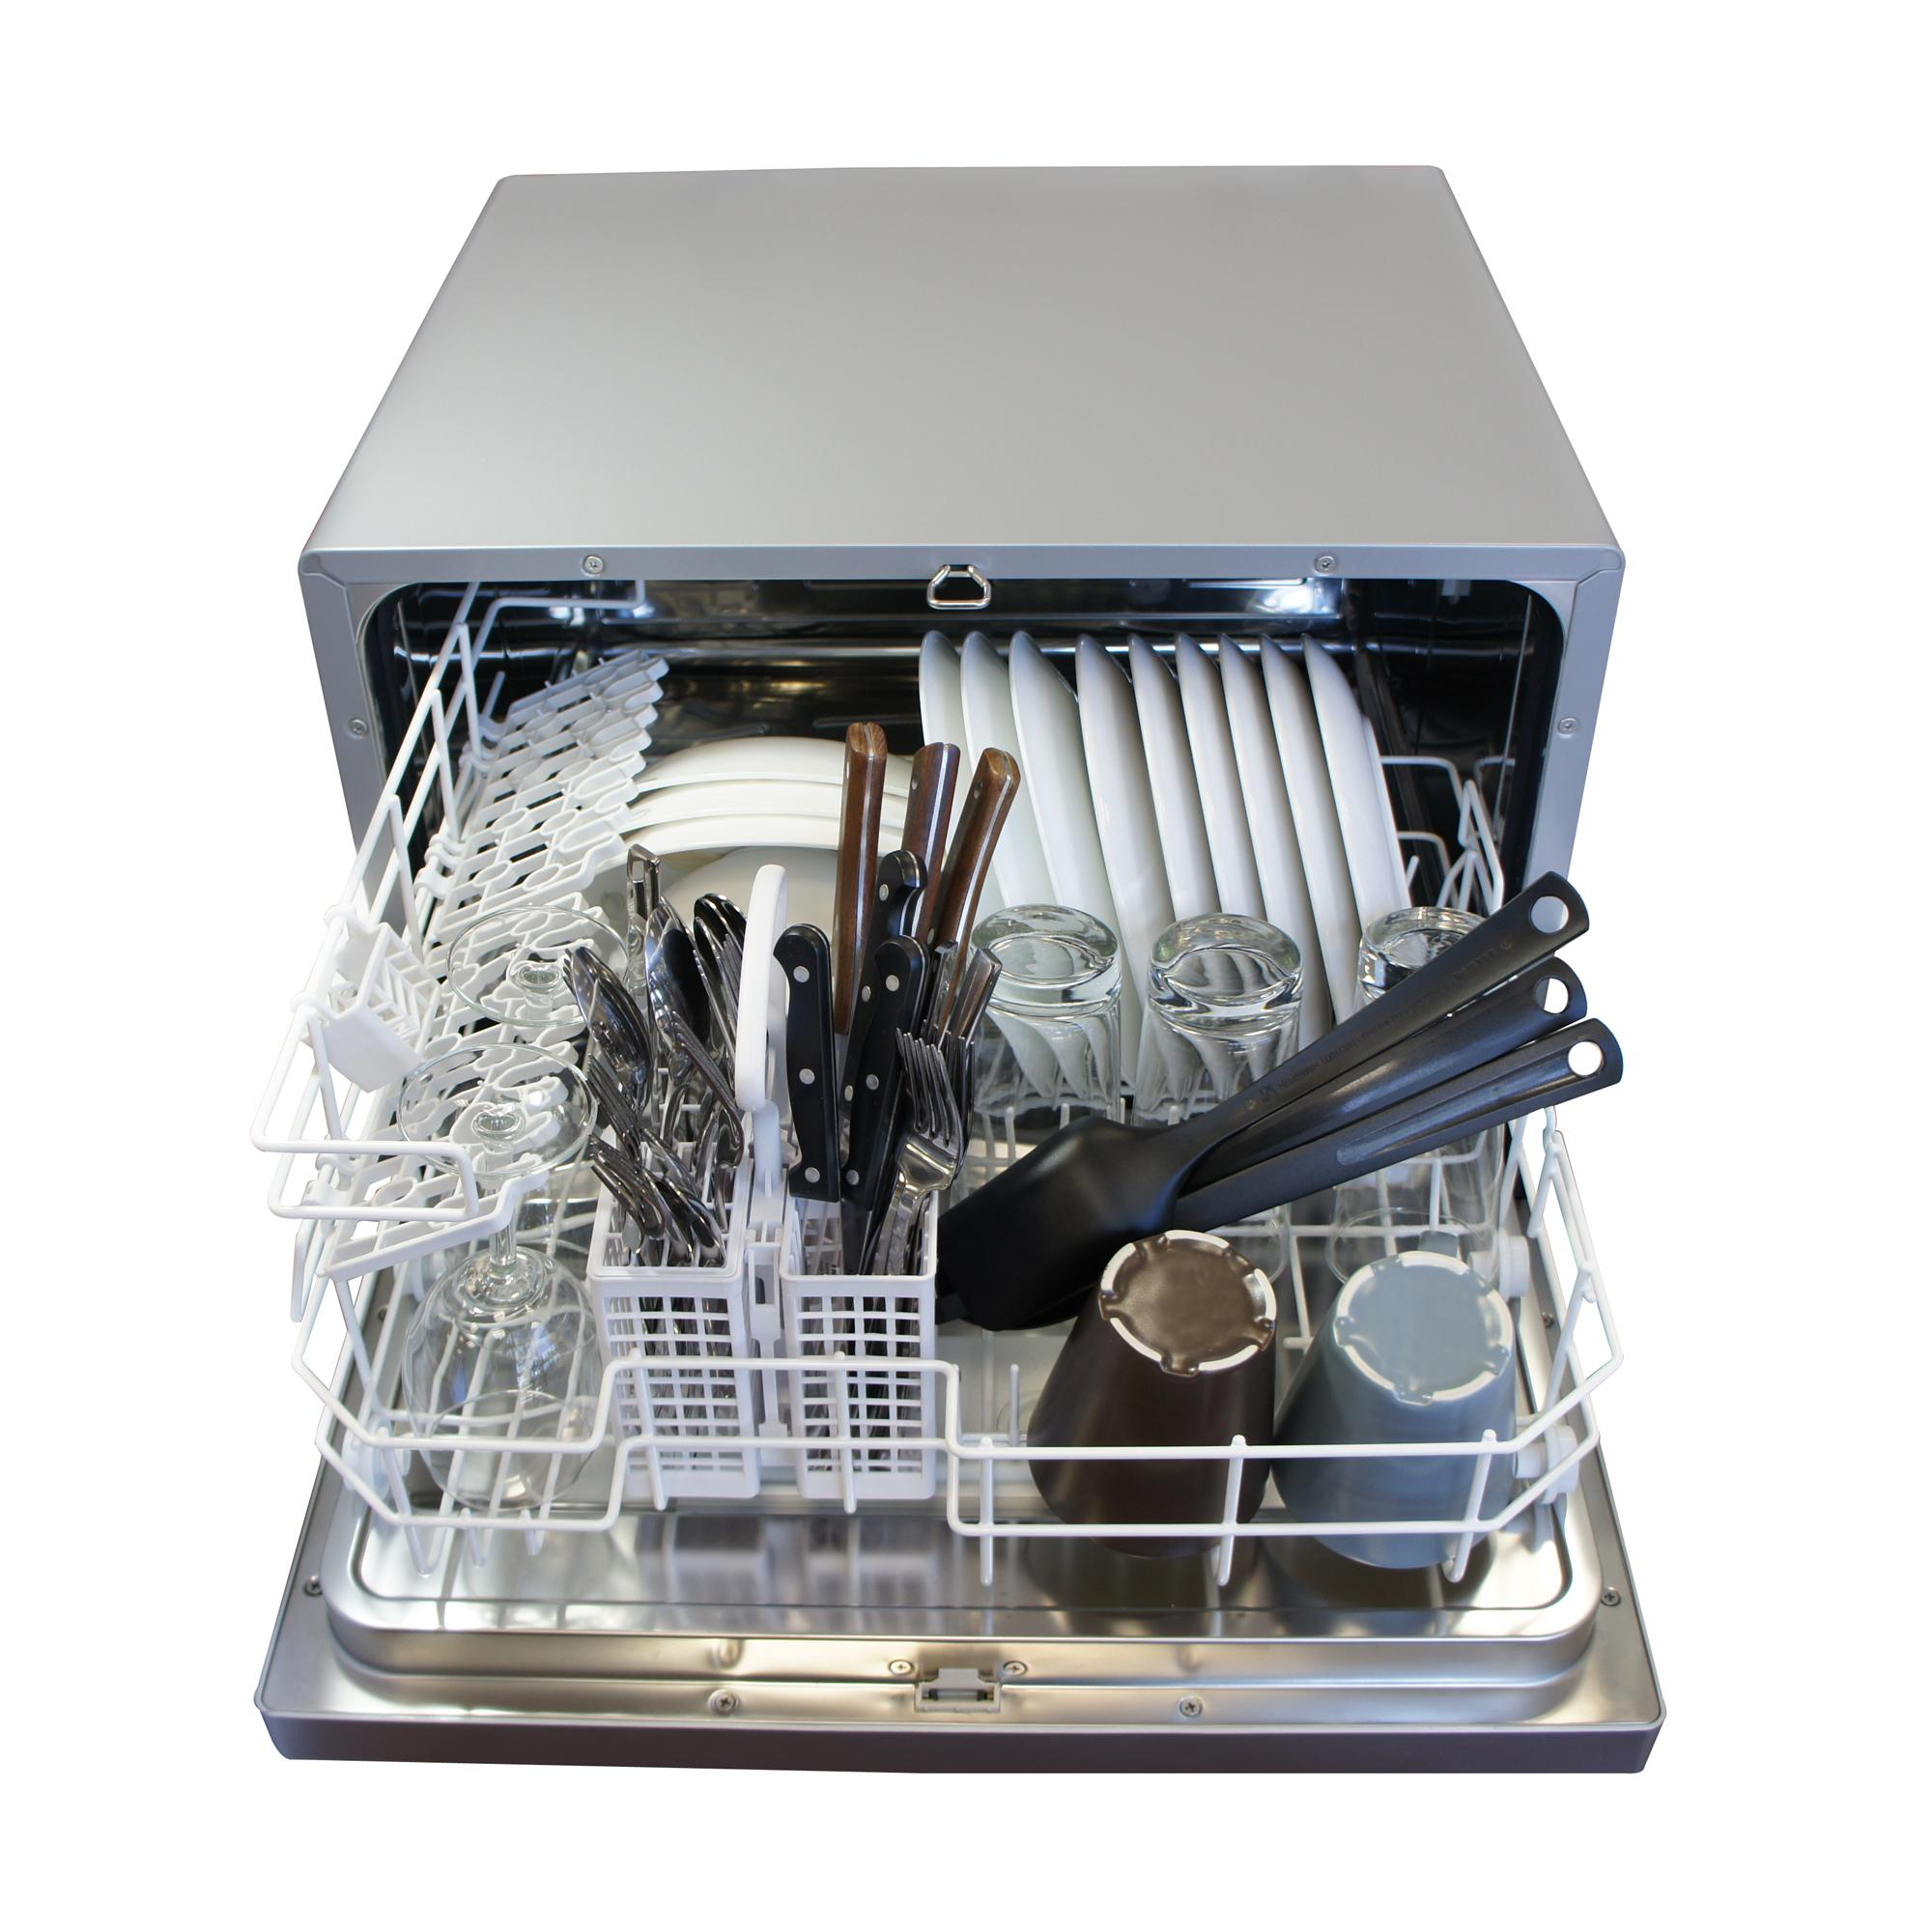 Small Dish Washer Spt Countertop Dishwasher Silver Amazonca Home Kitchen